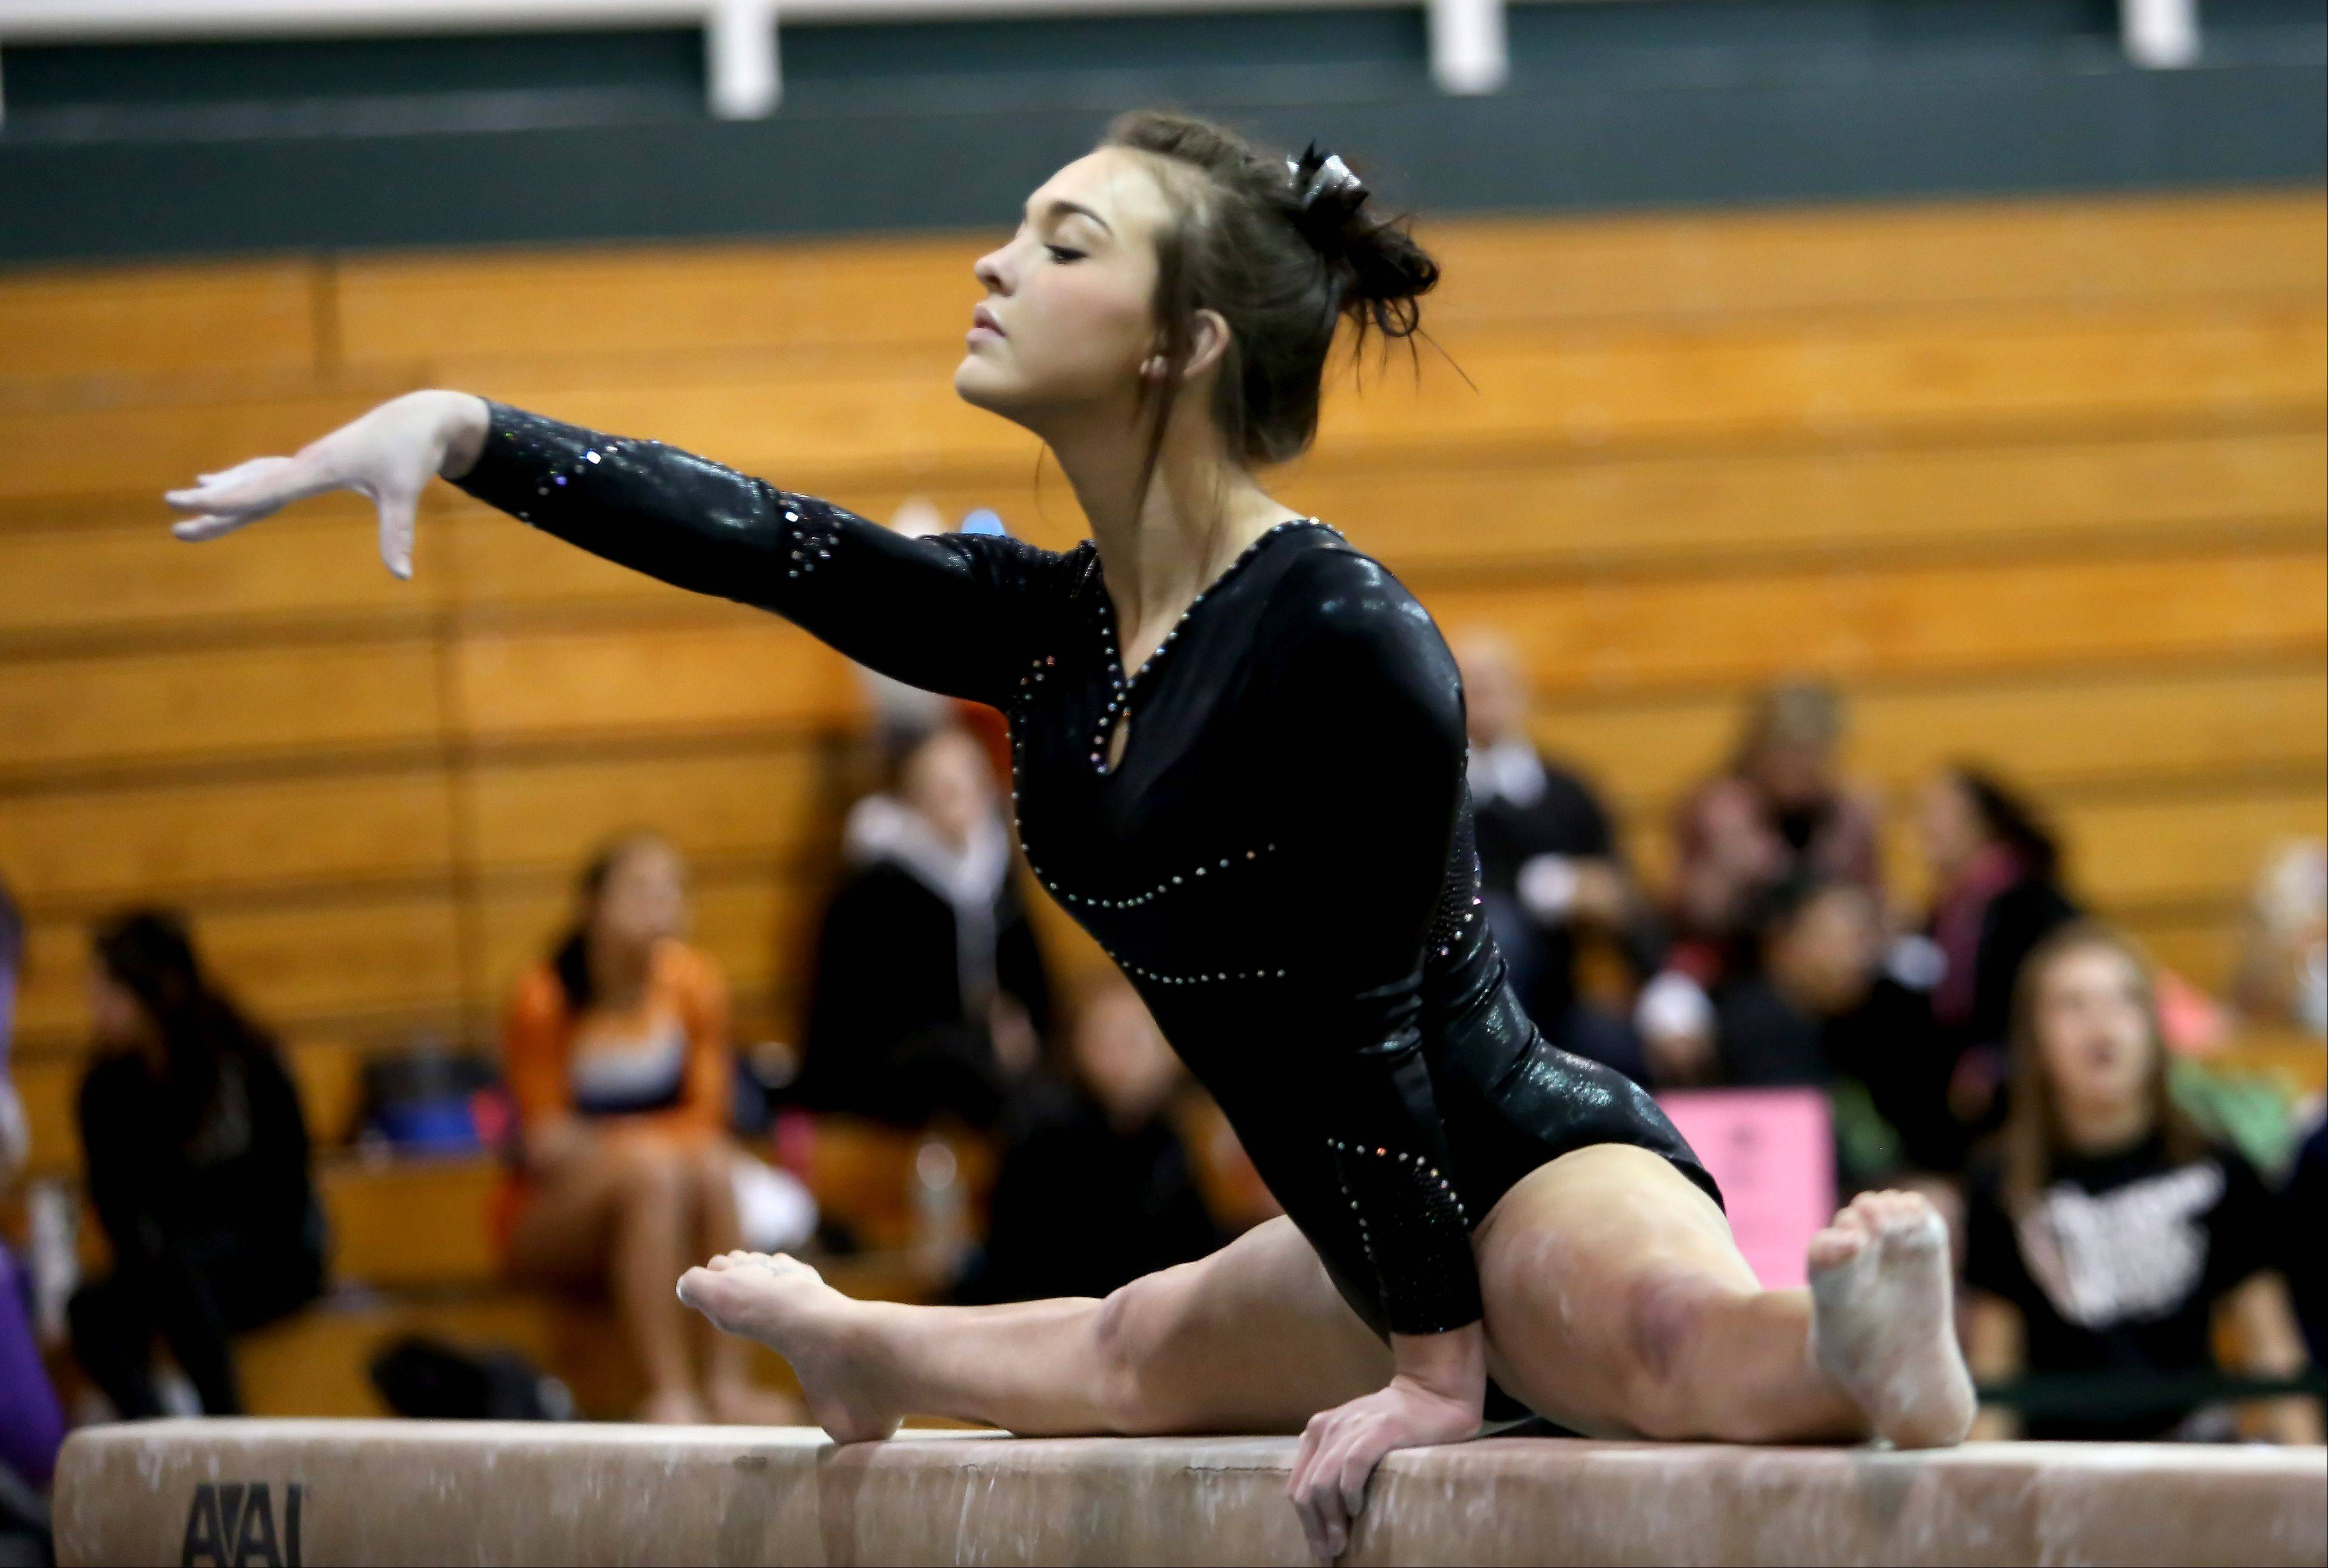 Alyssa Konkel of Bartlett co-op performs her beam routine at the sectional gymanstics championship at Glenbard West on Tuesday in Glen Ellyn.